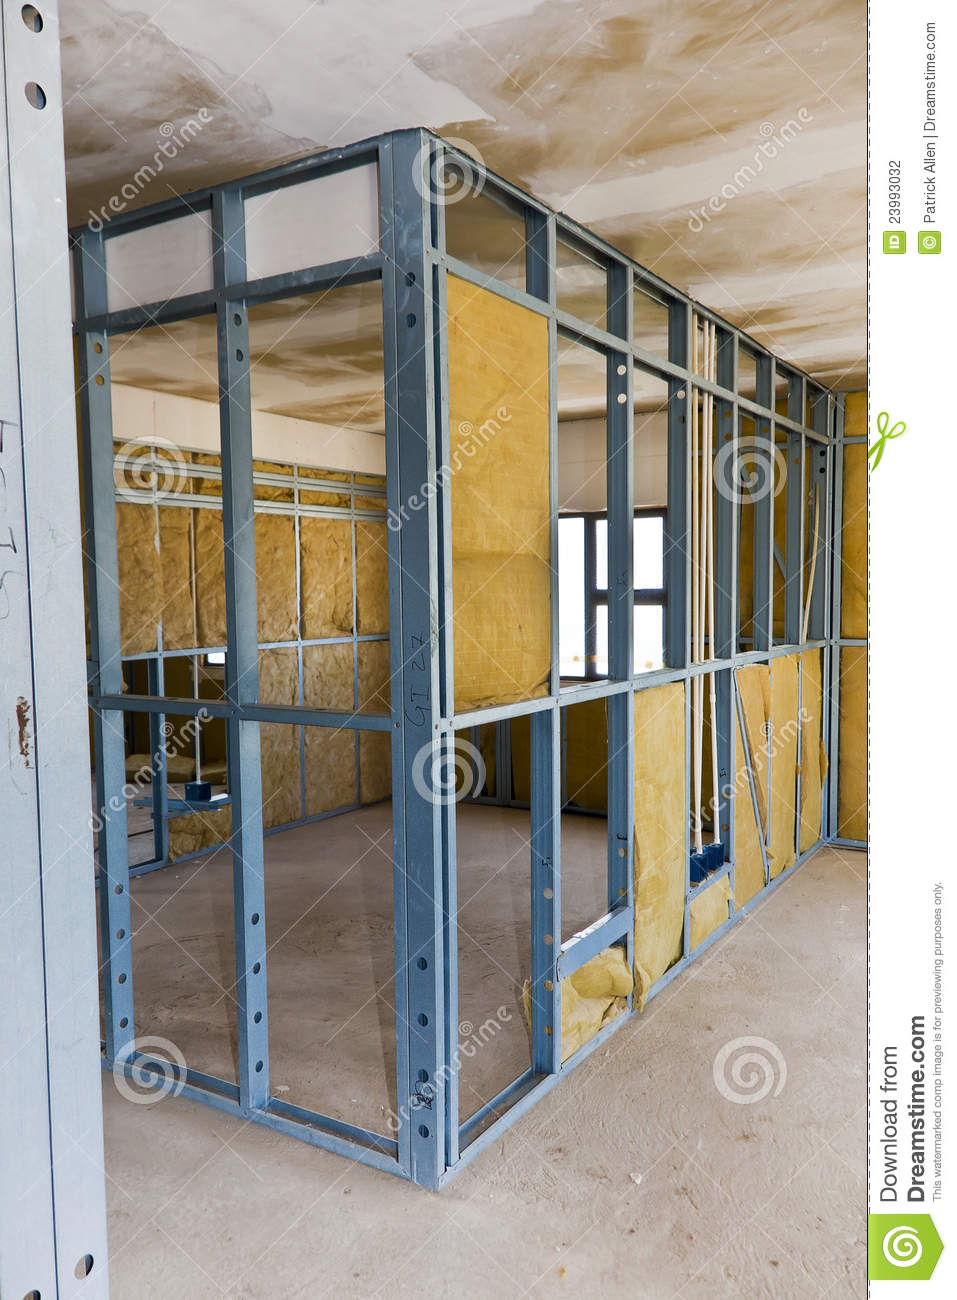 Construction Site  Drywall Stock Photo  Image of build concrete 23993032